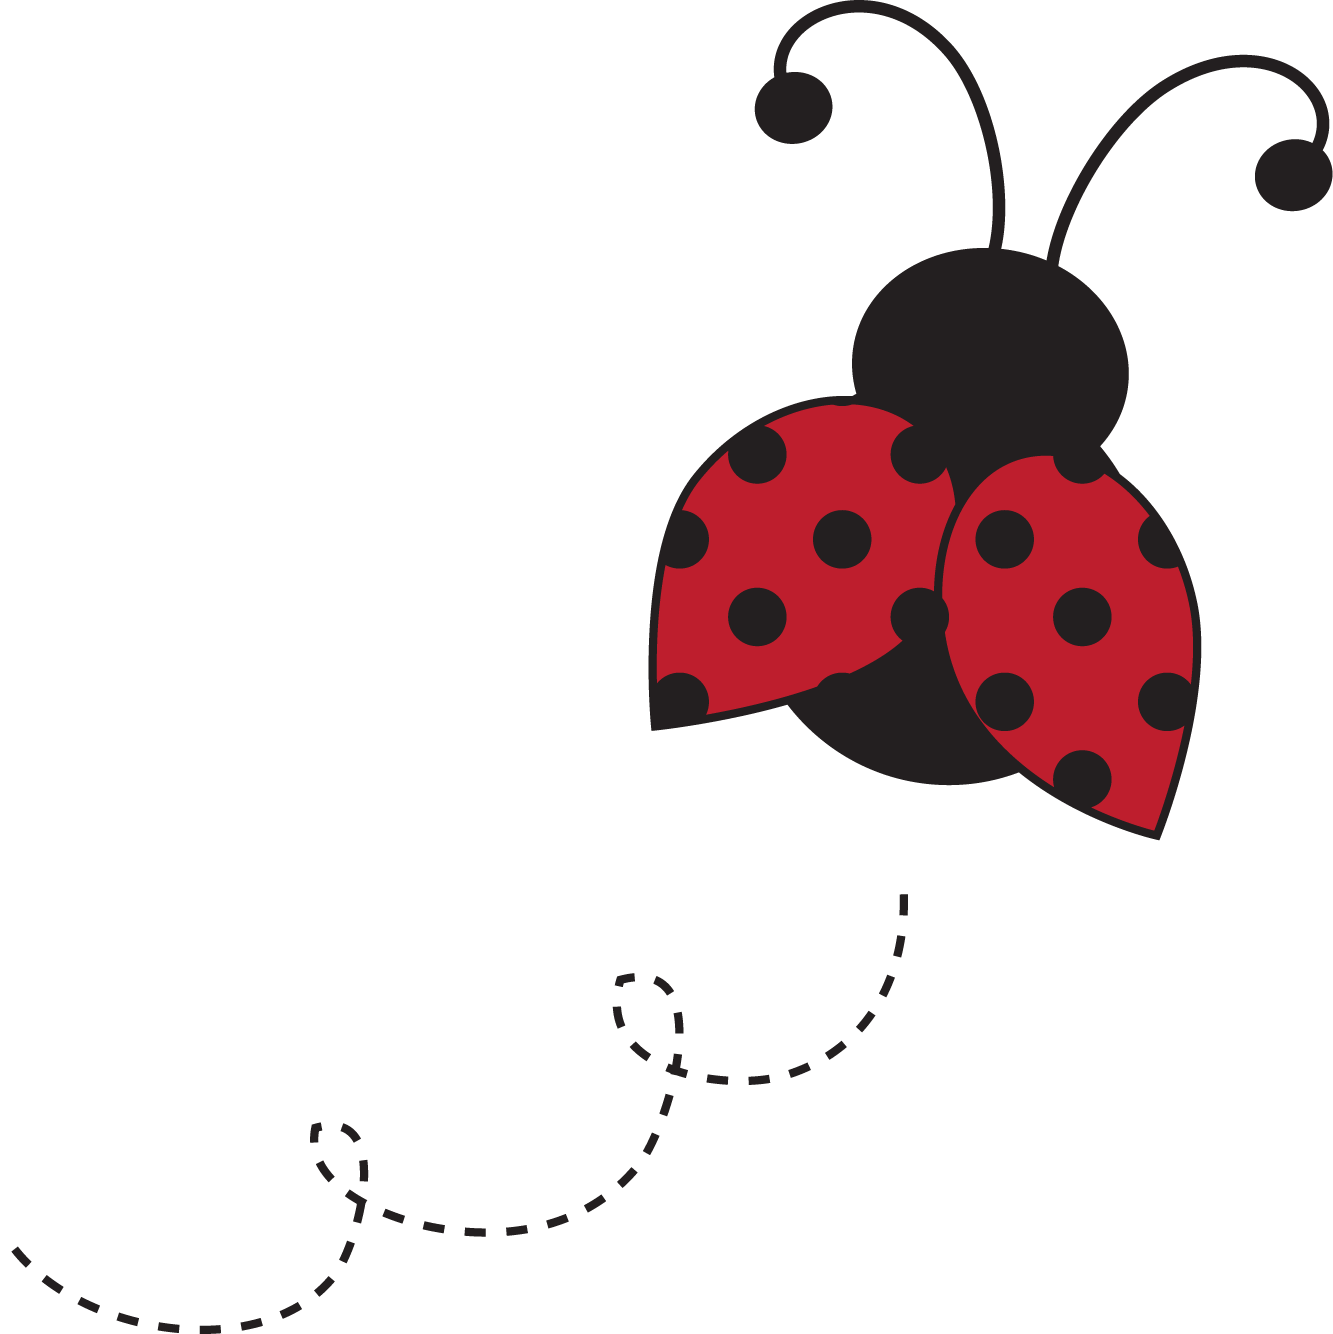 Free Baby Ladybug Cliparts, Download Free Clip Art, Free Clip Art on.